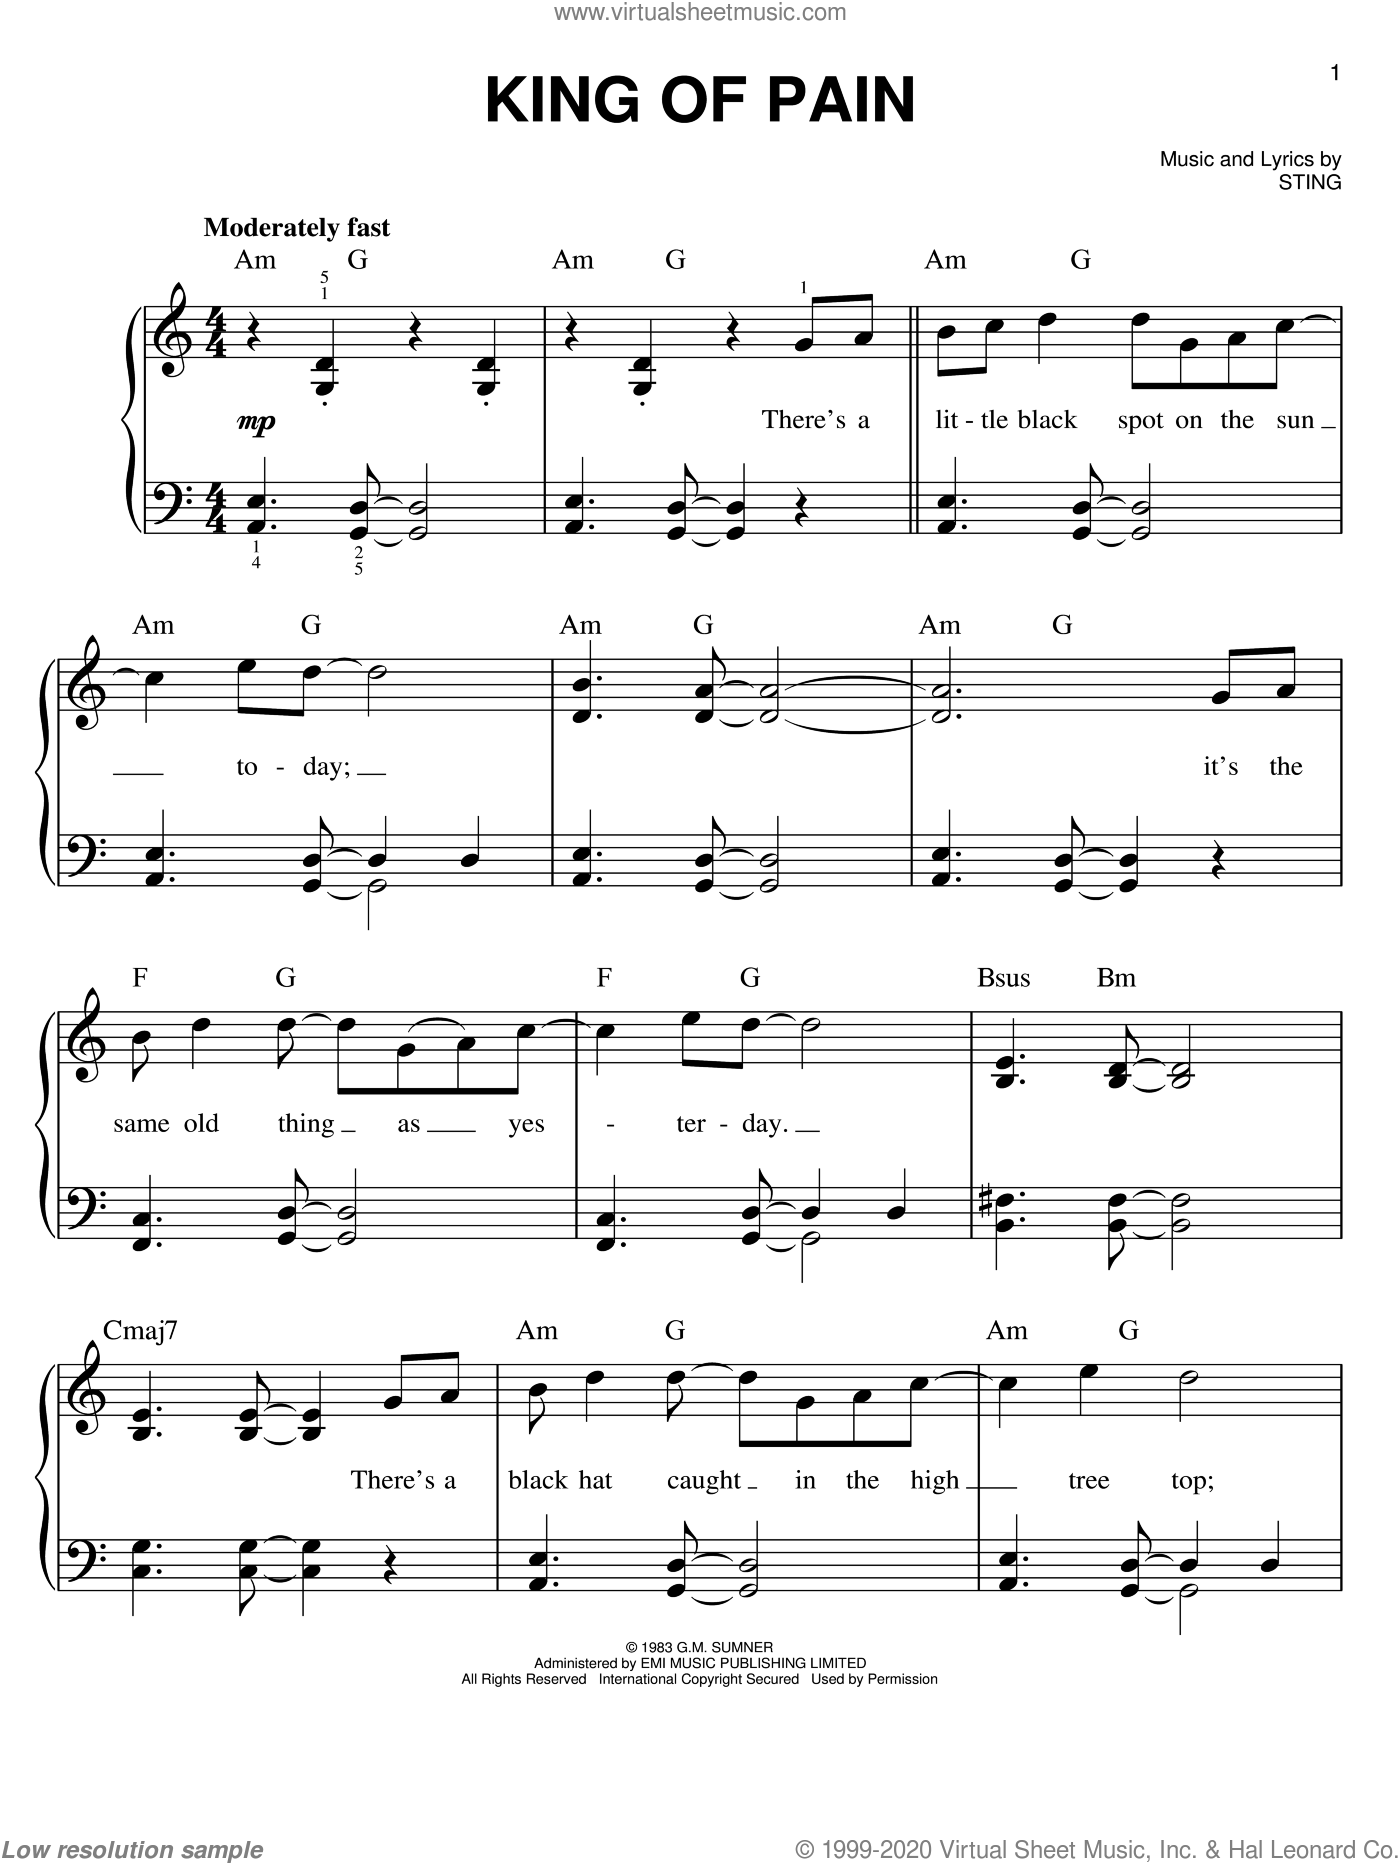 King Of Pain sheet music for piano solo by The Police